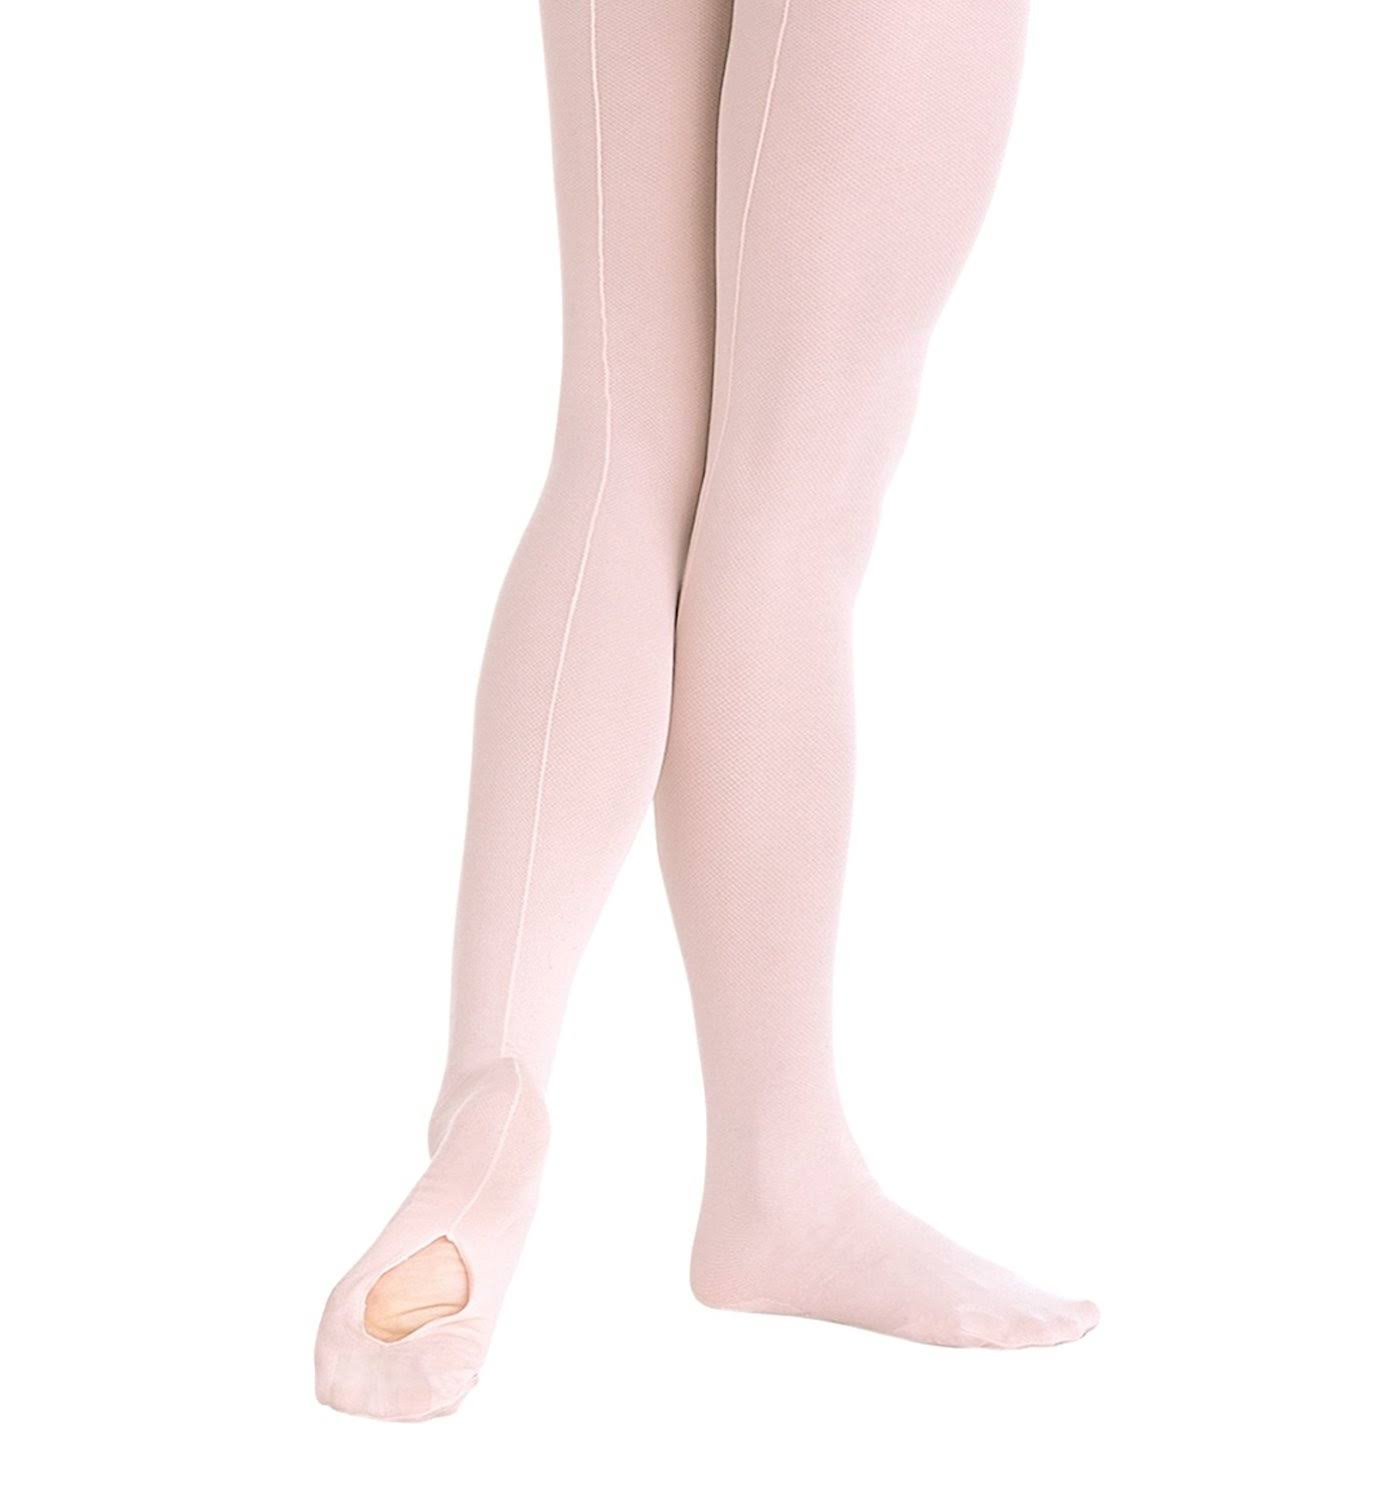 Body Wrappers A45 TotalSTRETCH Convertible Mesh Backseam Dance Tights